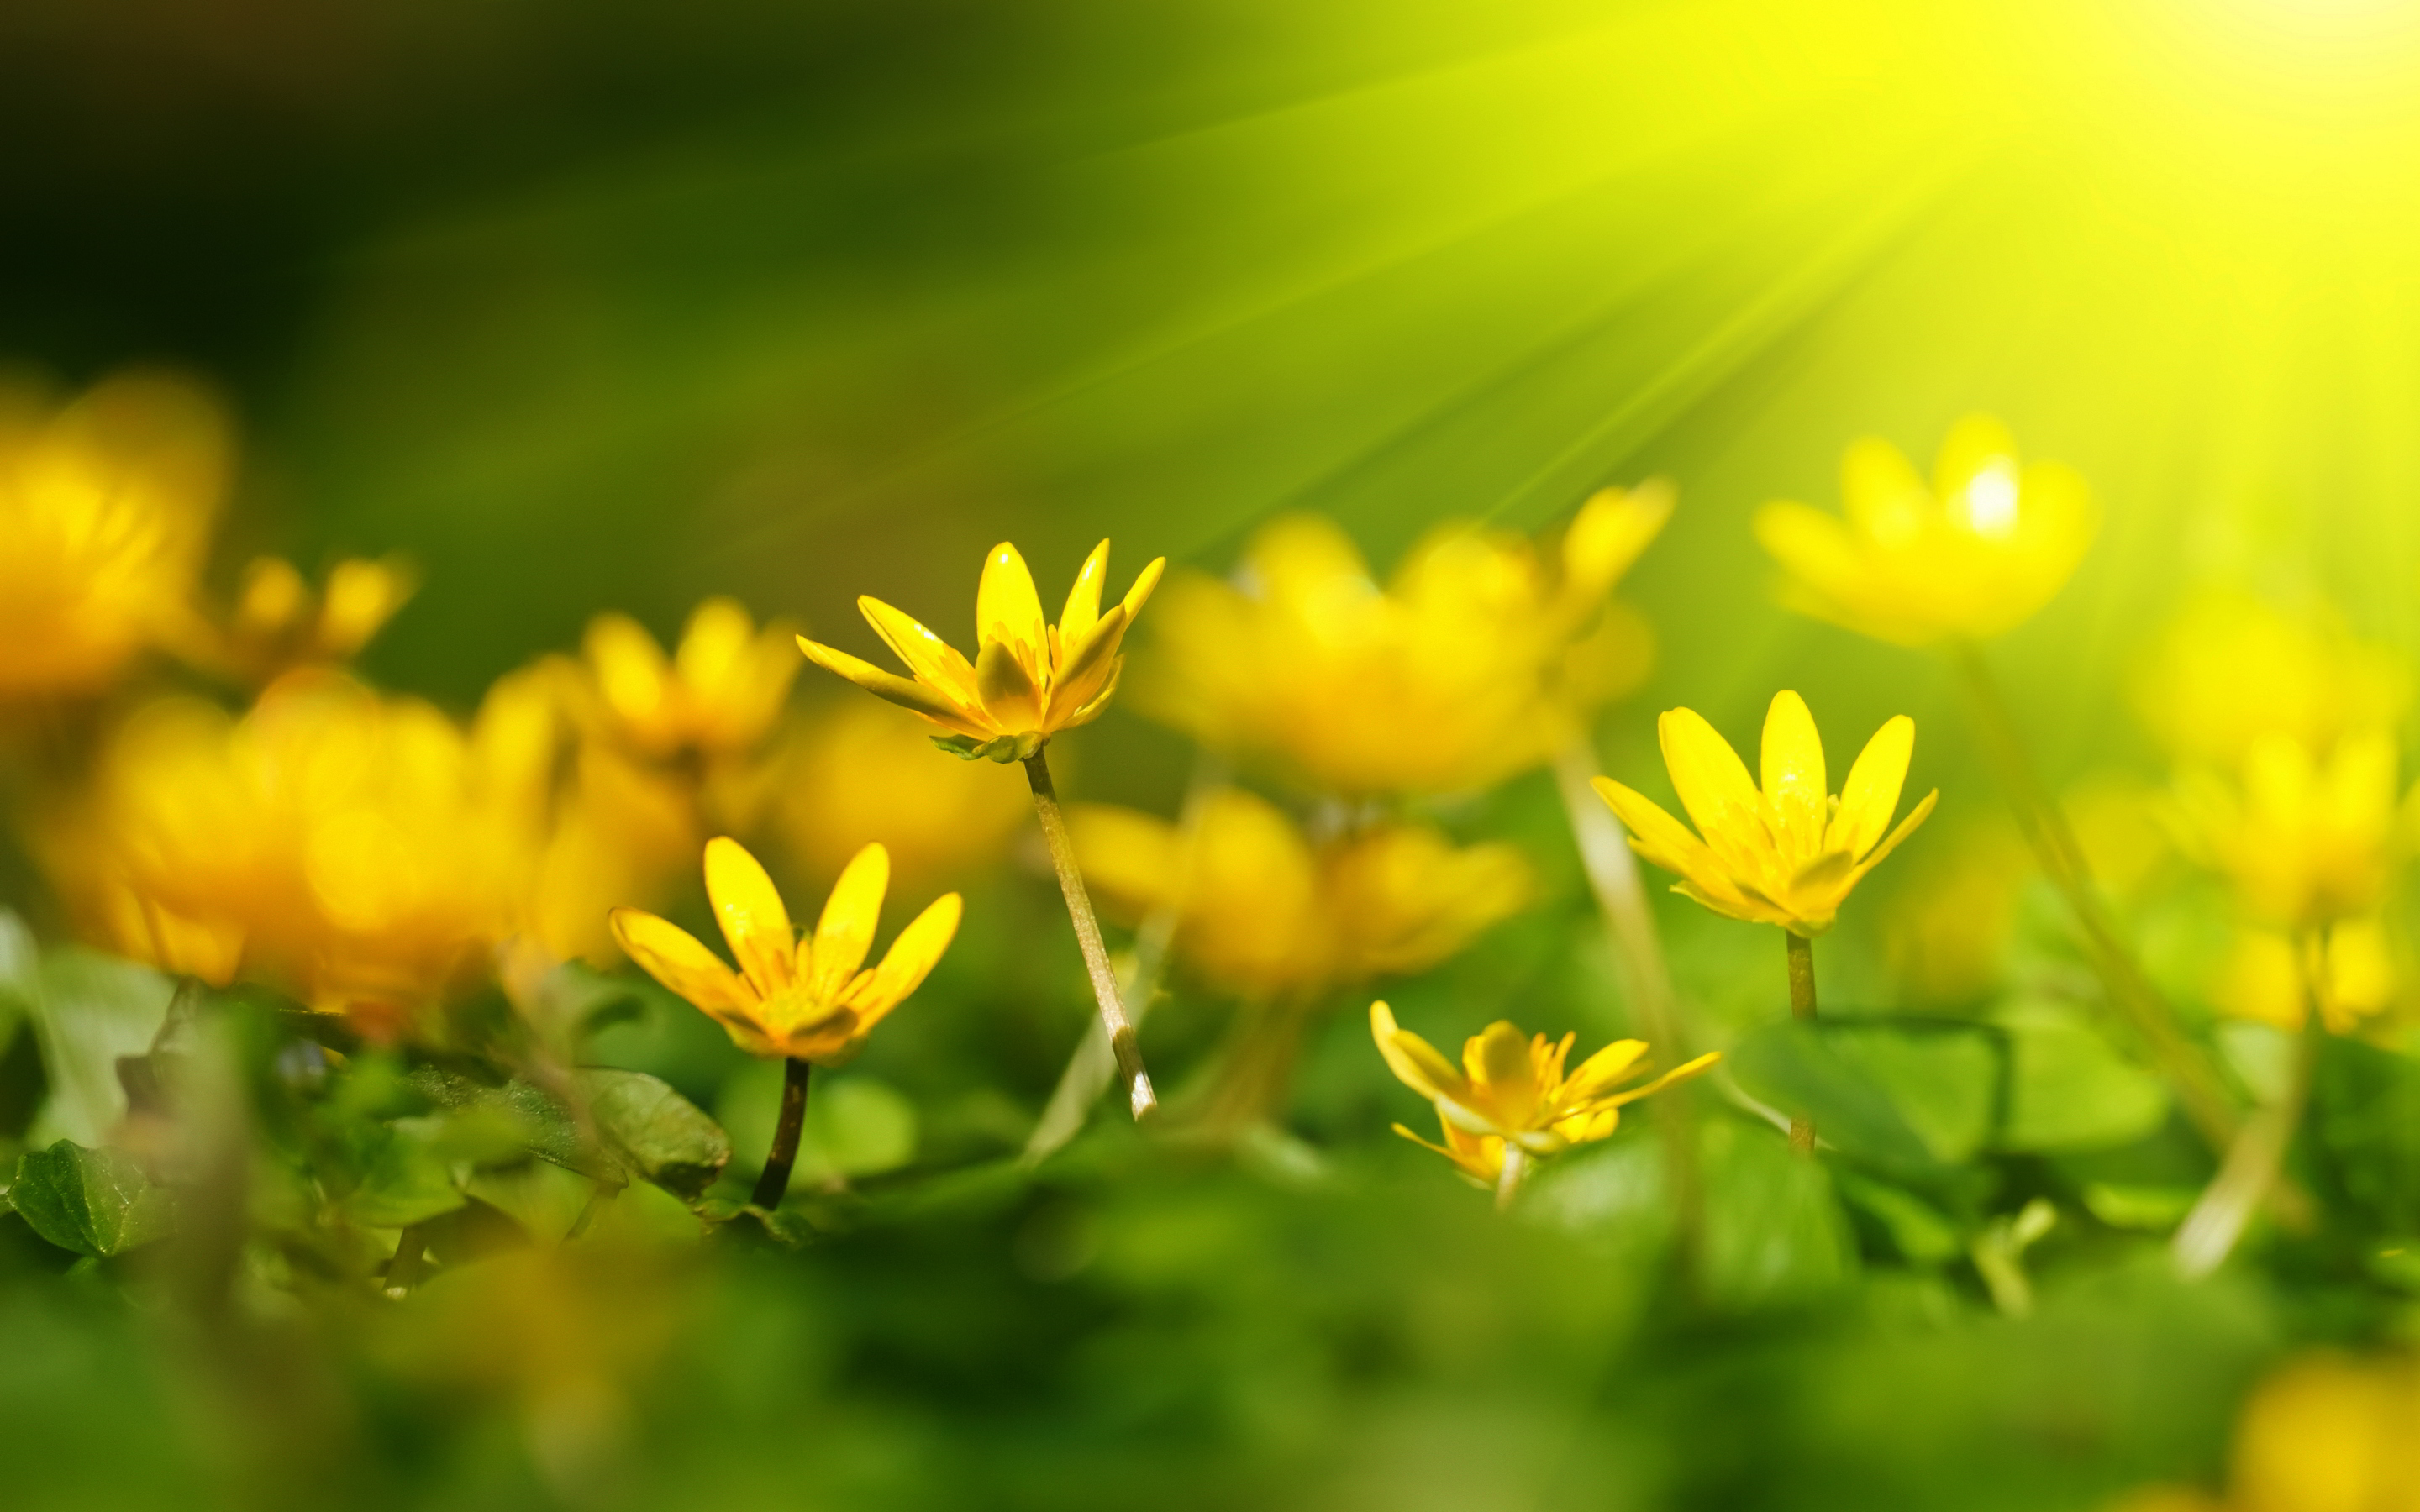 sunshine wallpaper yellow flowers